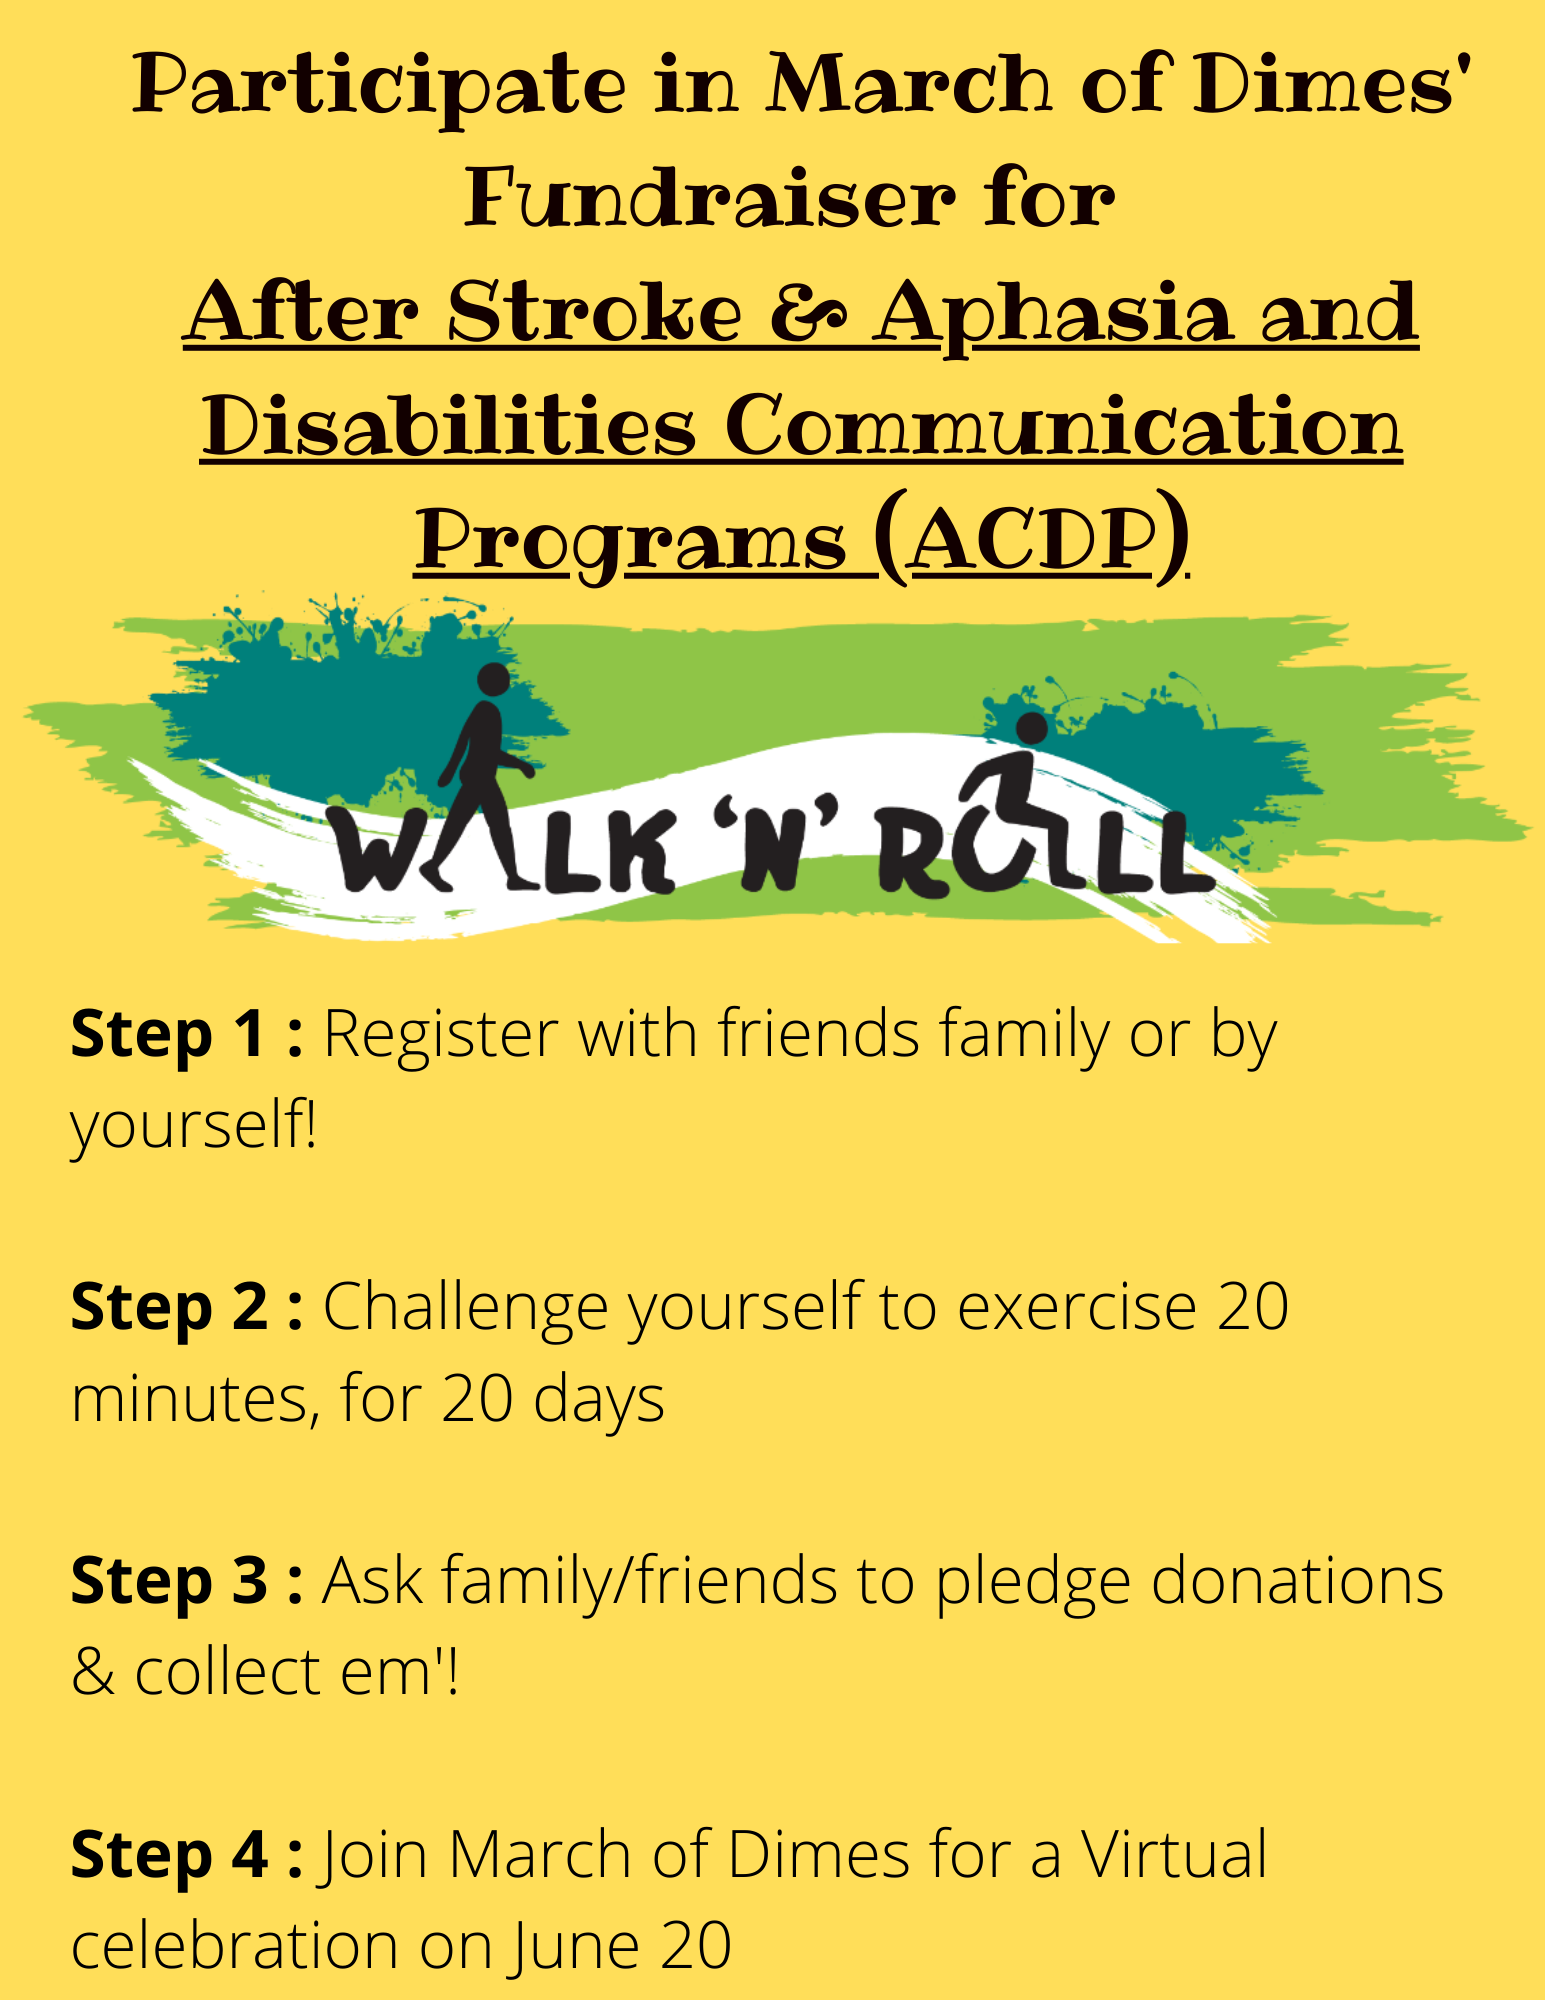 Register with friends family or by yourself! Challenge yourself to exercise 20 minutes, for 20 days Ask family_friends to pledge donations & collect em! Join March of Dimes for a Virtual celebration on June 20.